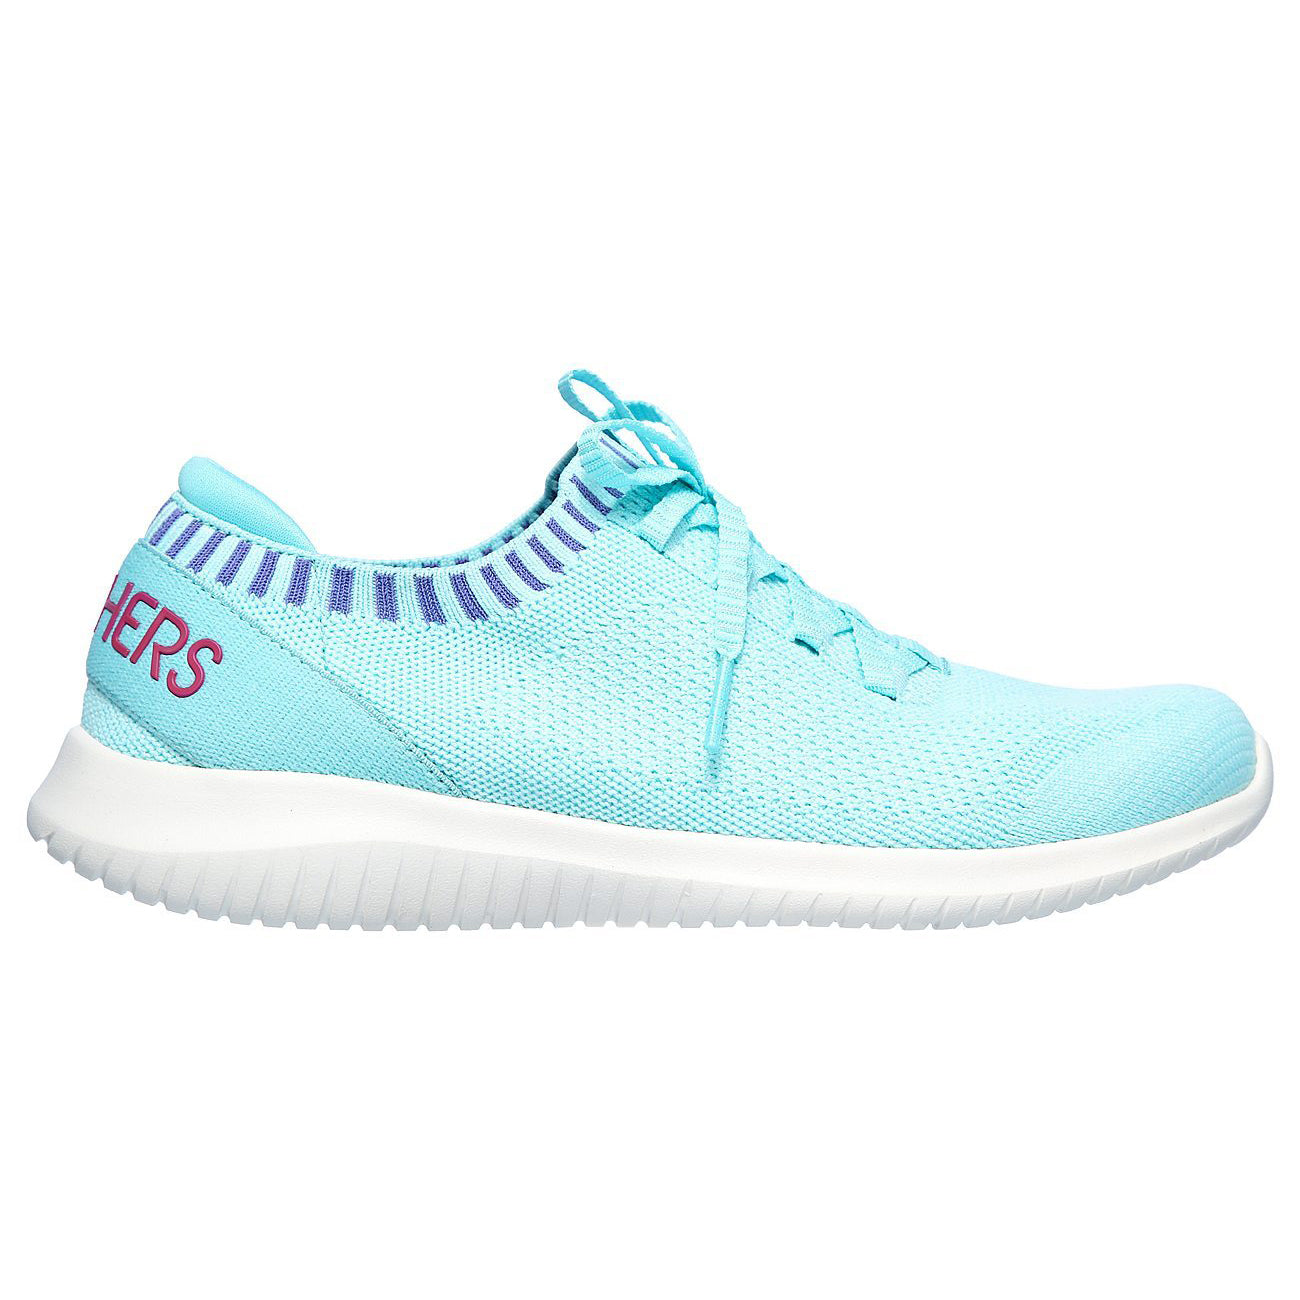 Skechers Trainers - 149065 - Turquoise